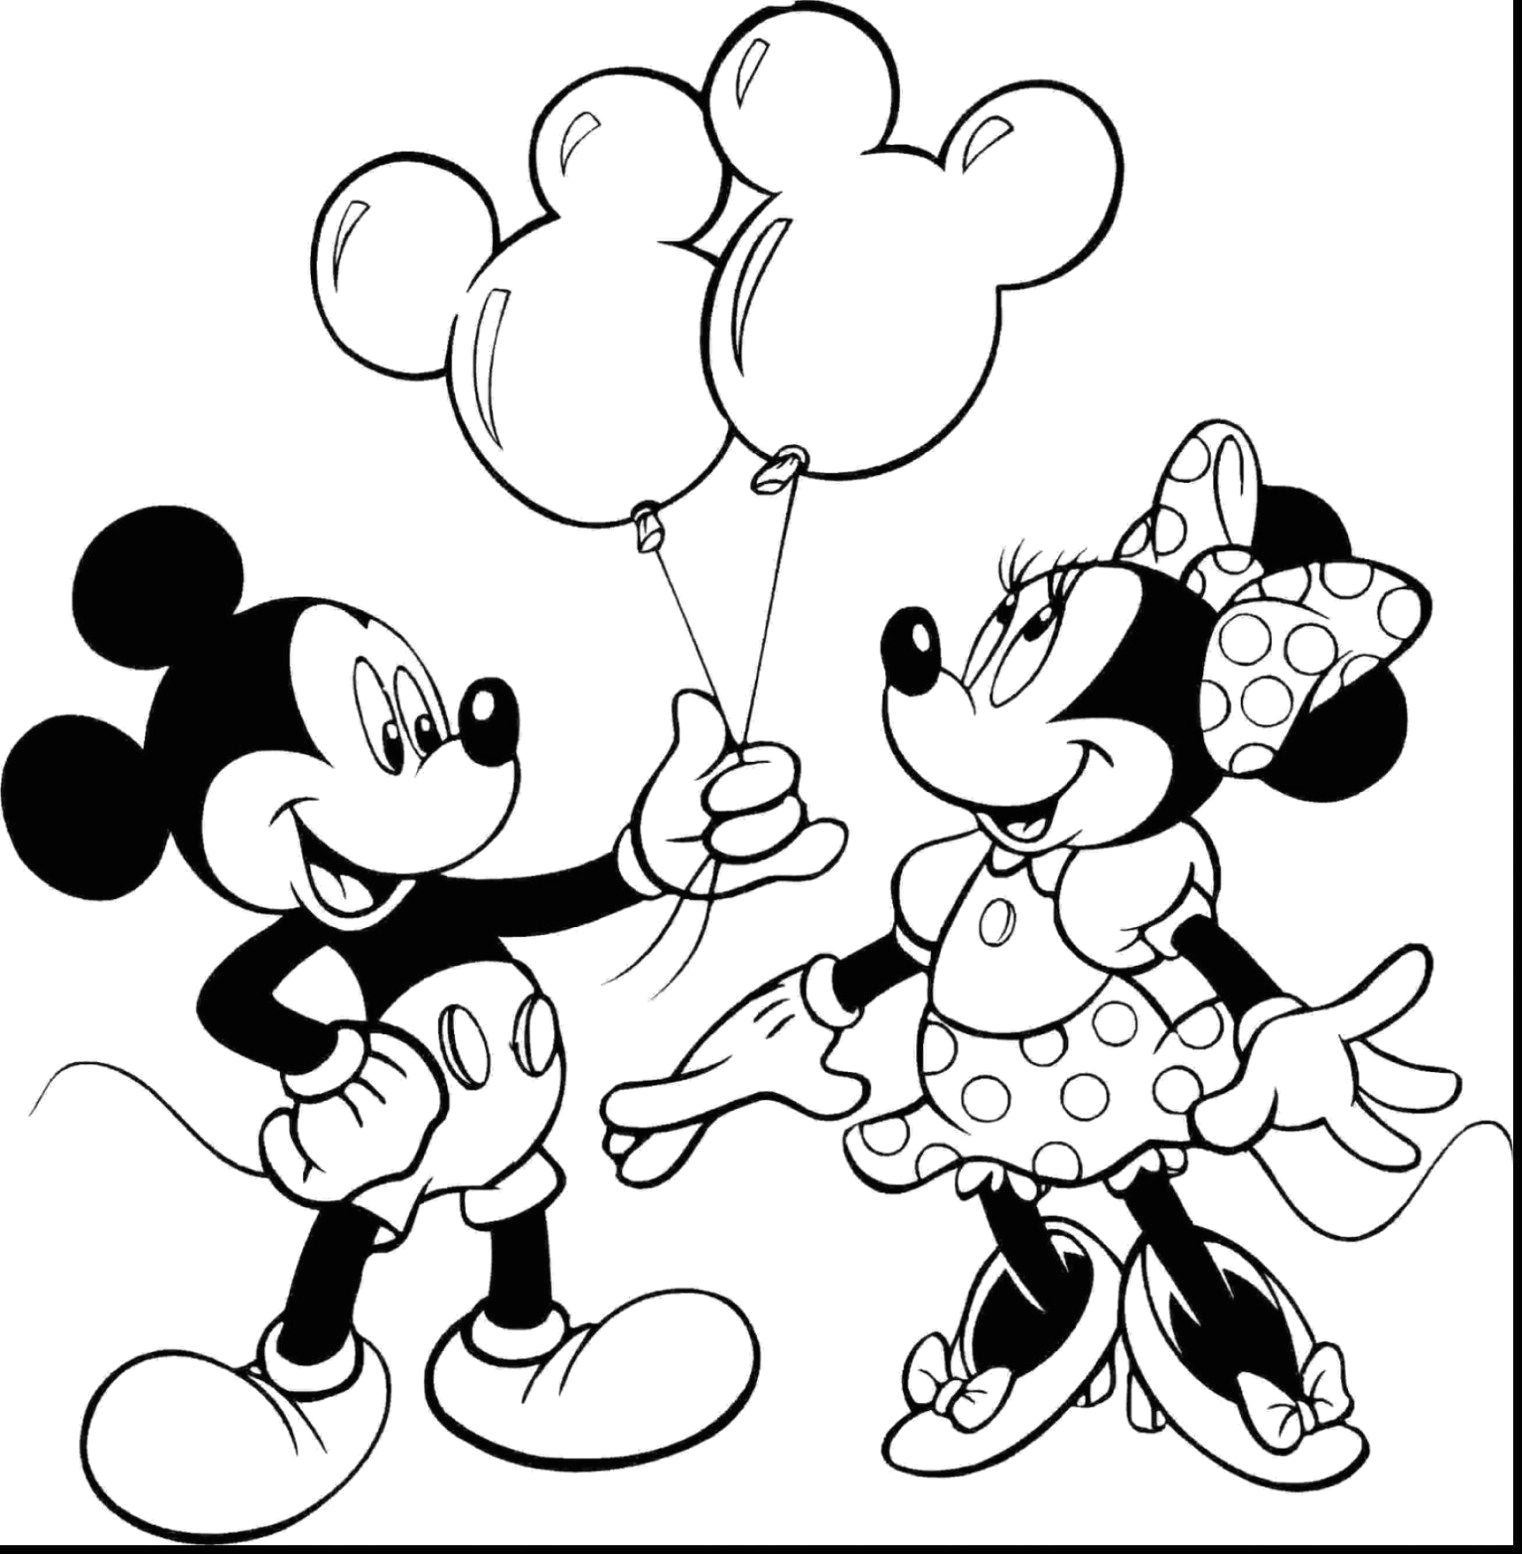 Free Printable Mickey and Minnie Mouse Coloring Pages Mickey and Minnie Coloring Pages Modest Minnie Mouse